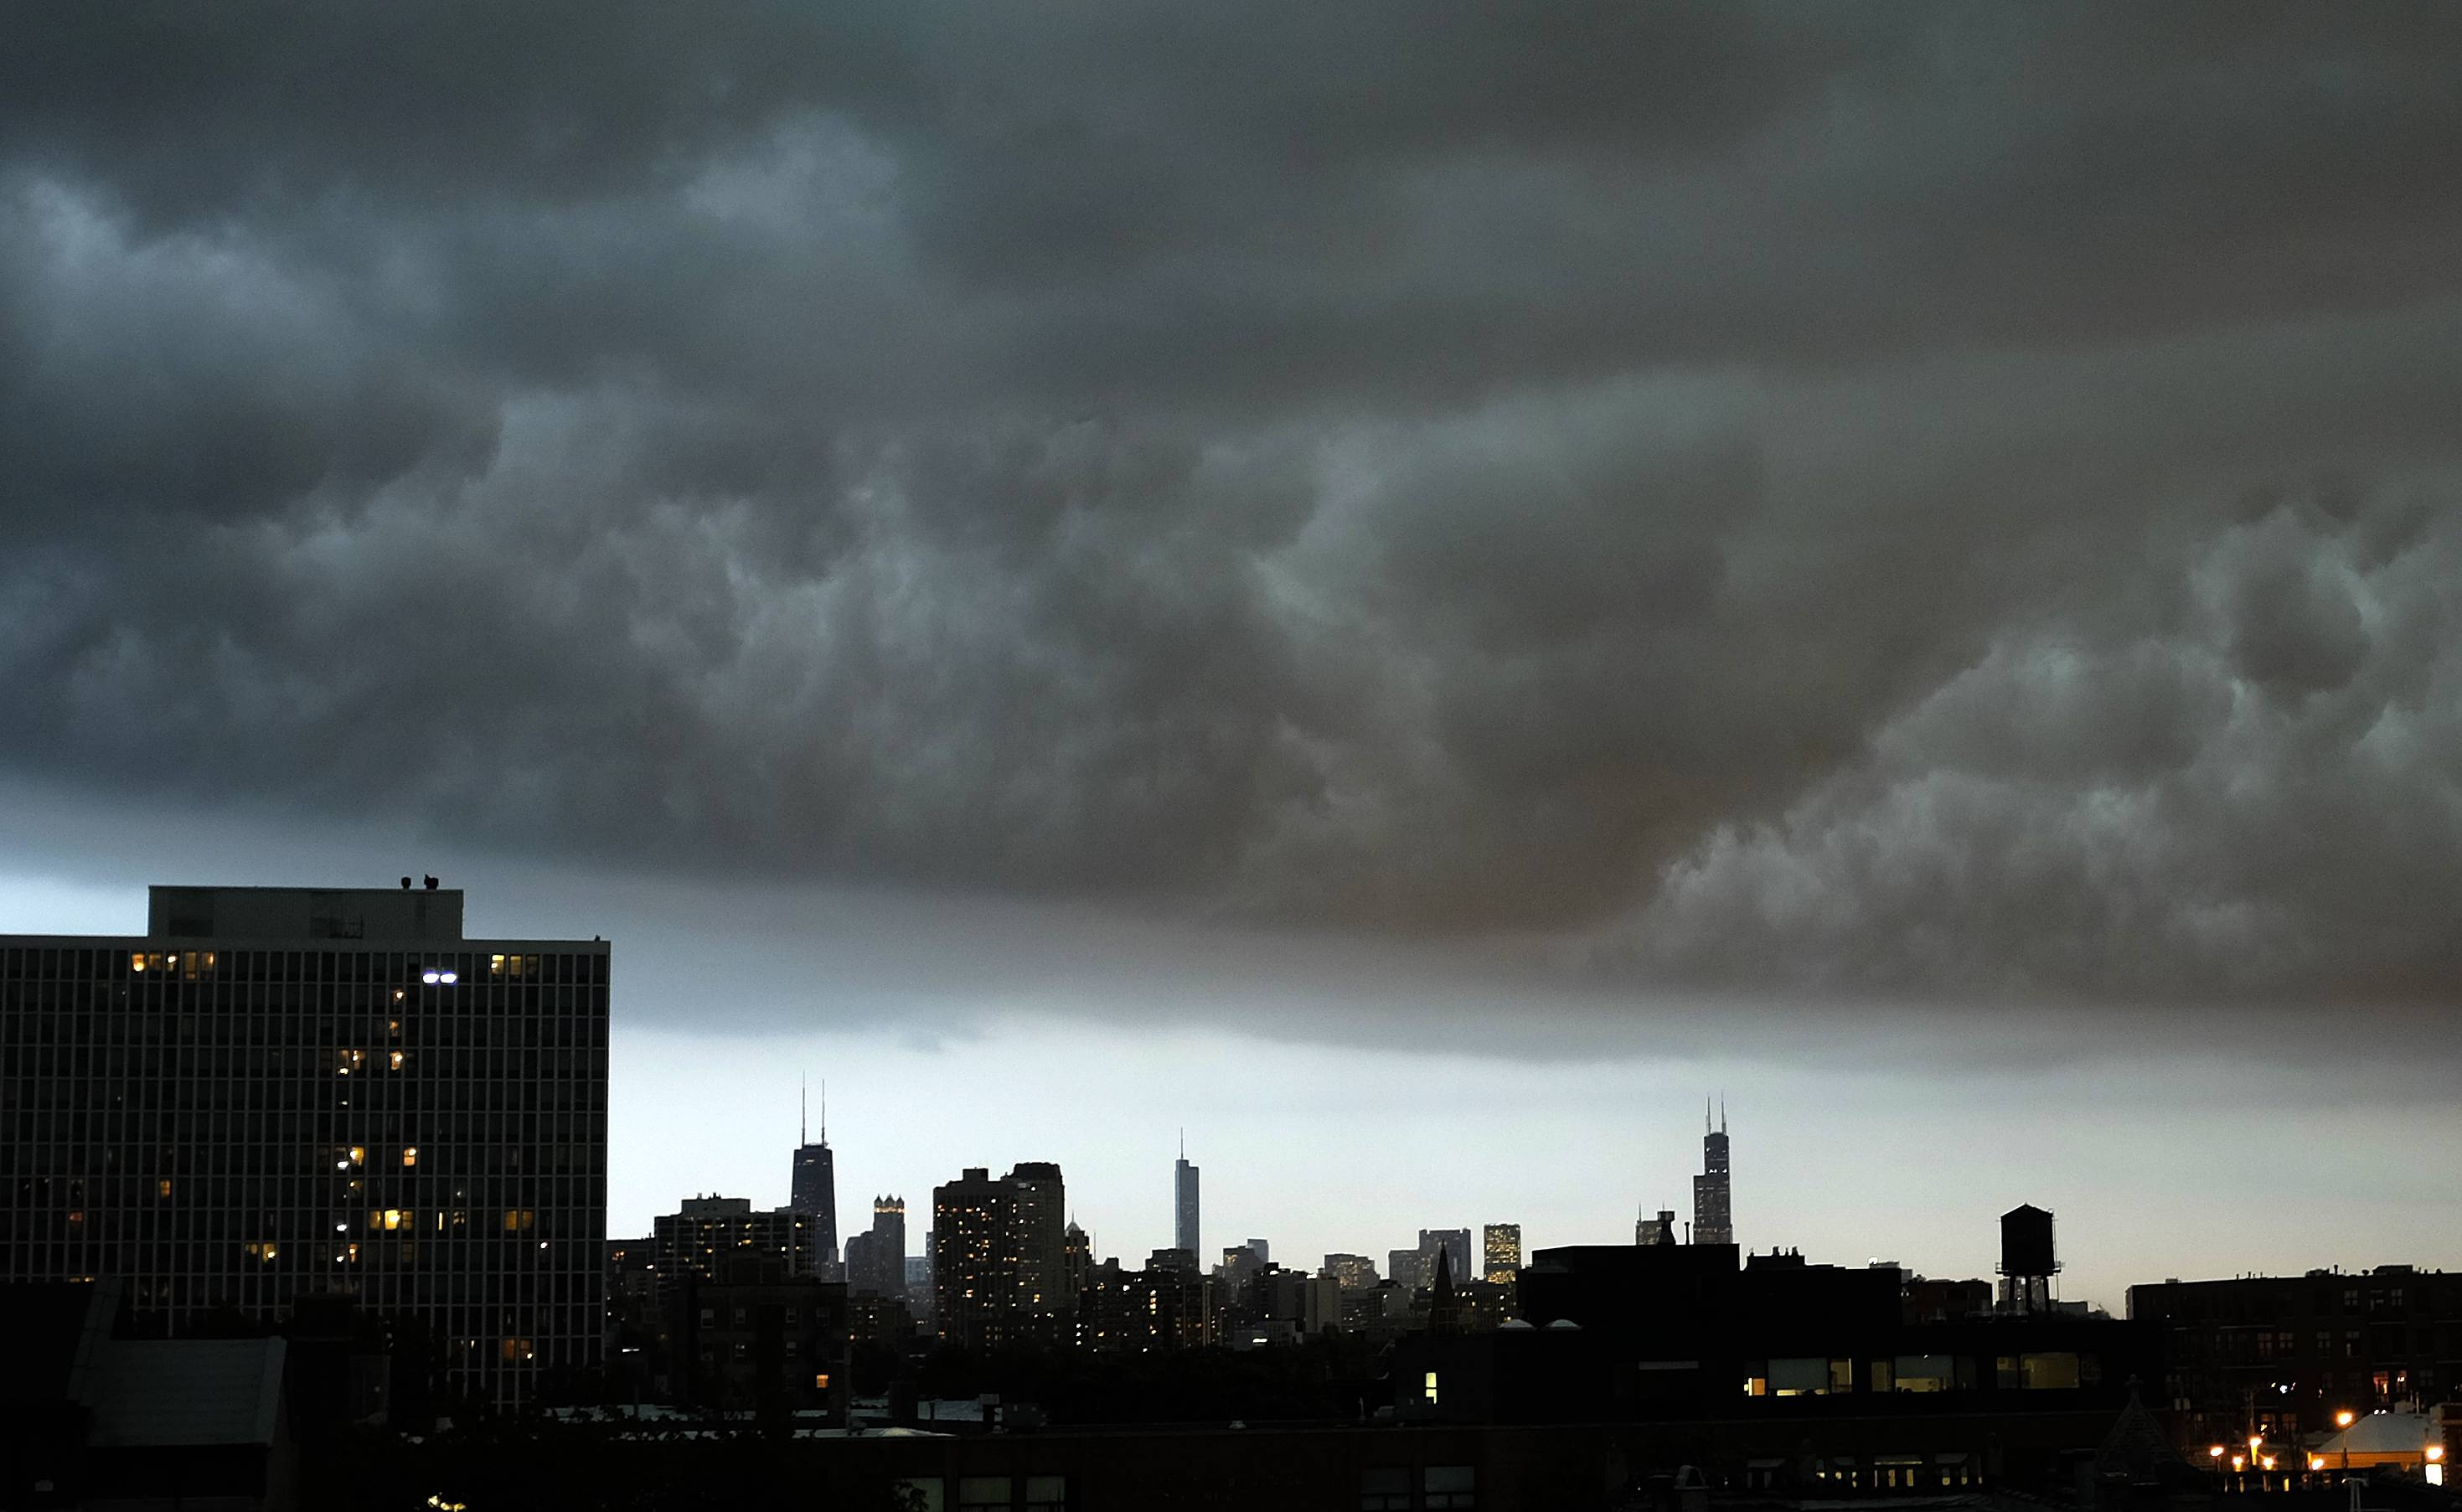 Storm cloud hangs over downtown Chicago skyline Monday evening as rain and high winds moved into Illinois from Iowa. Flights cancelled at Chicago's O'Hare International Airport as northern Illinois braces for severe weather.